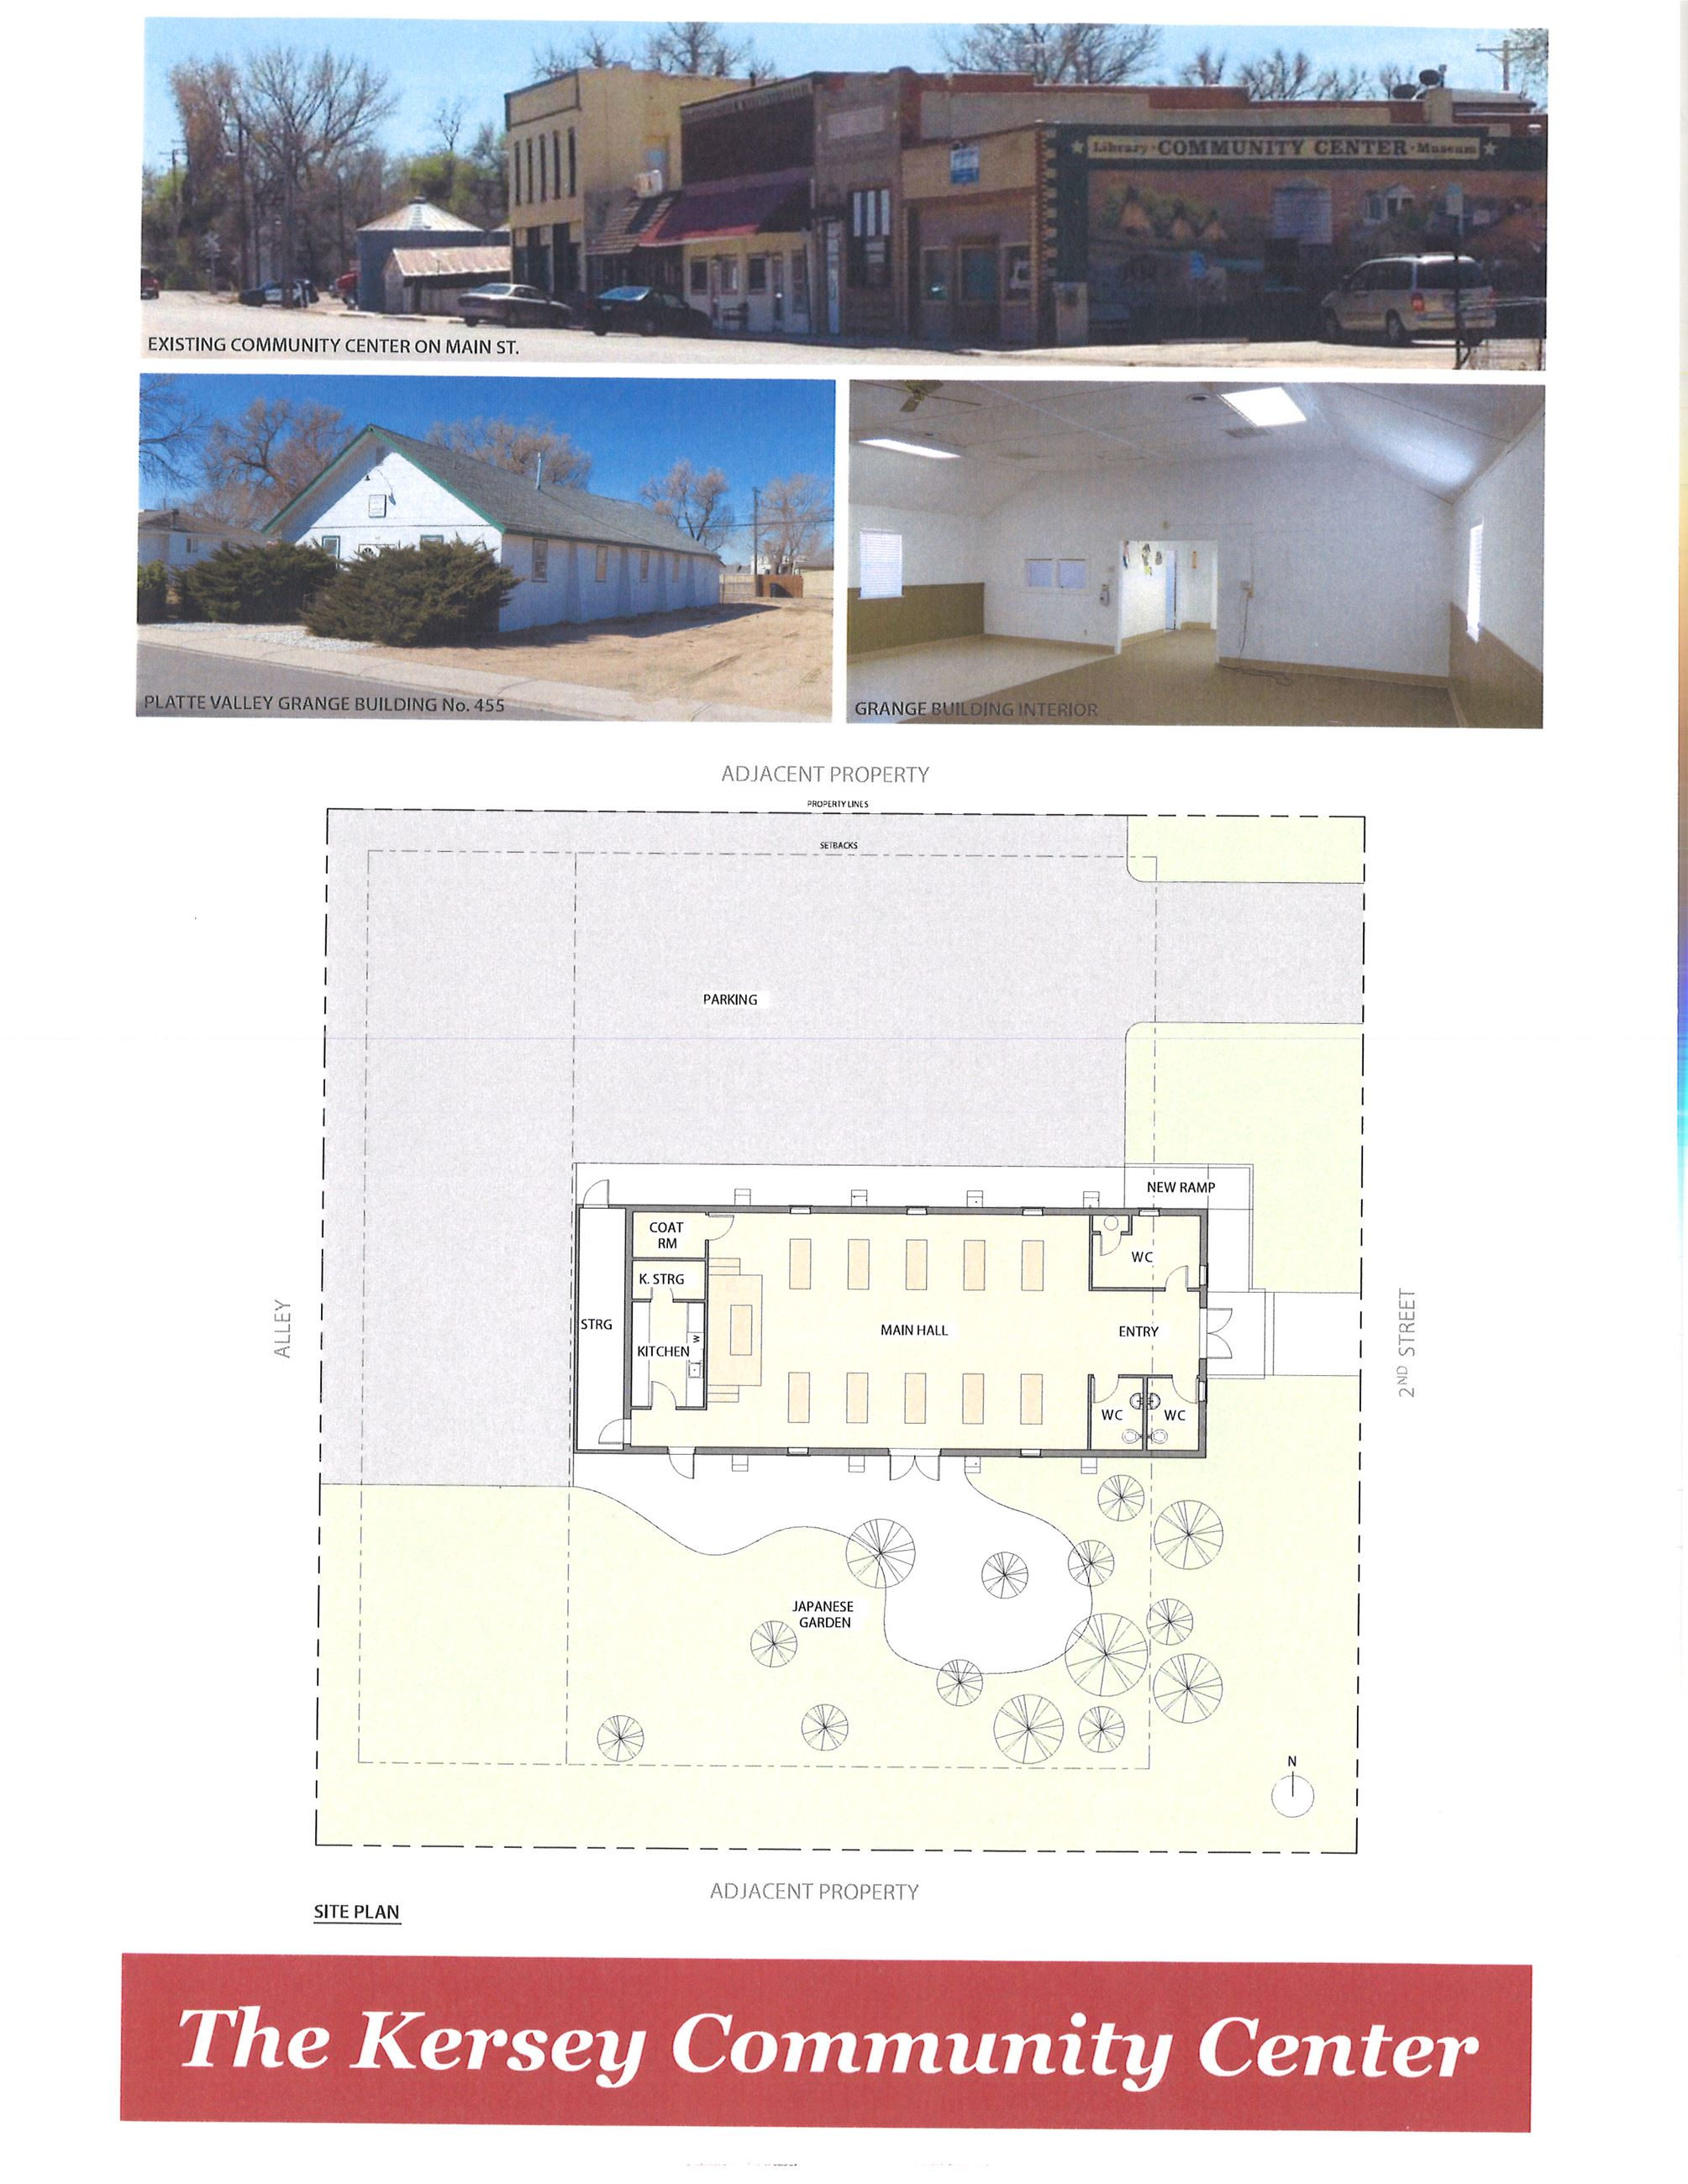 OVERVIEW ARCHITECTURAL CONCEPTUAL RENDERINGS OF THE KERSEY COMMUNITY CENTER AT THE GRANGE